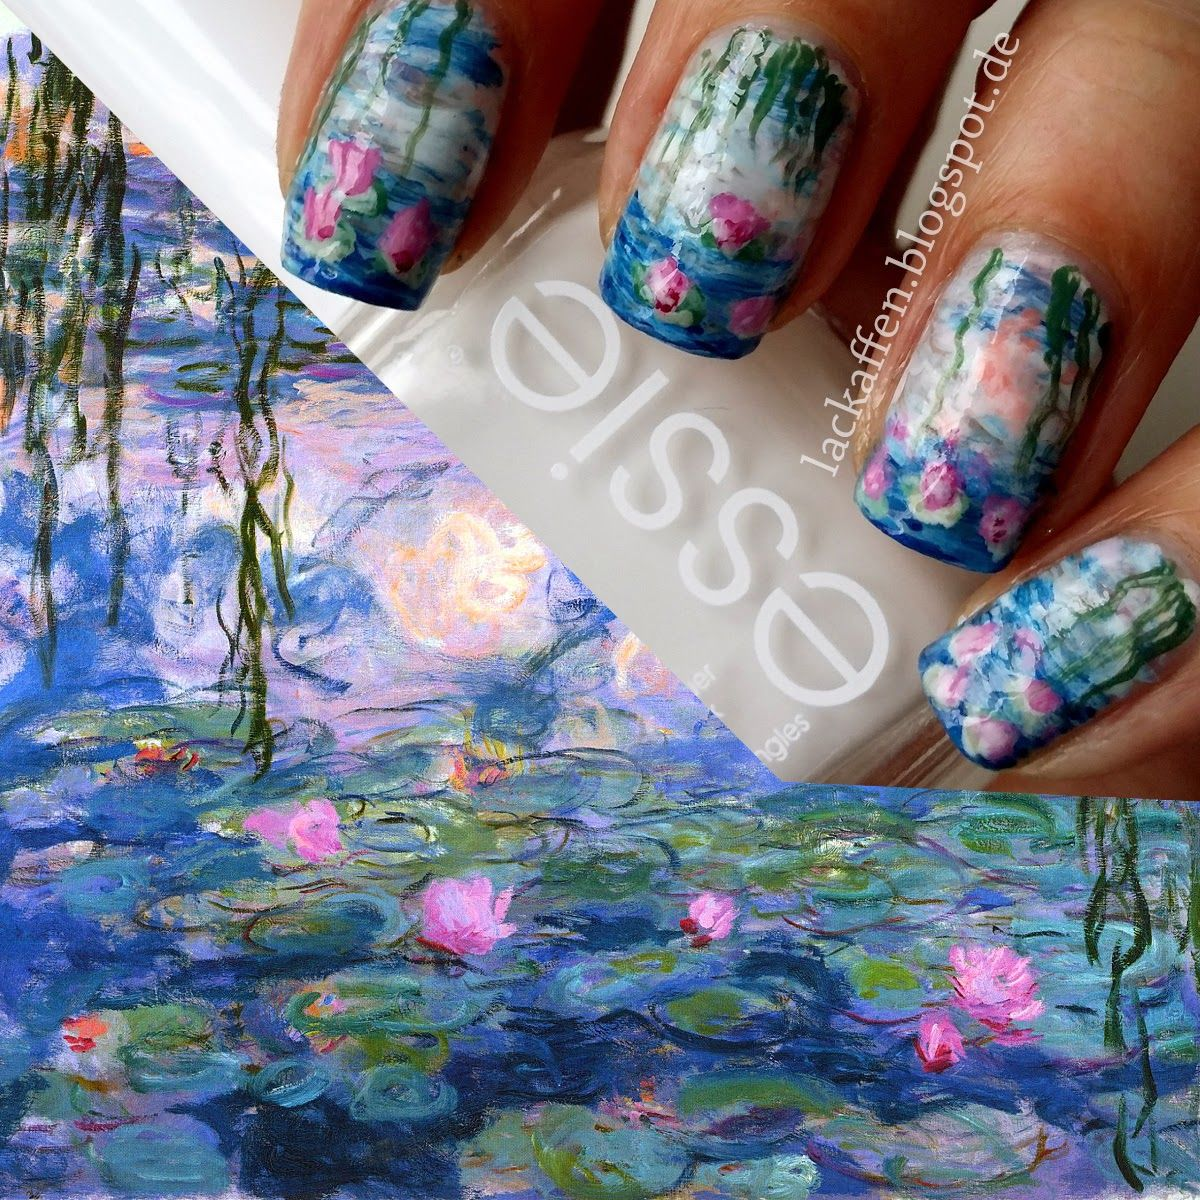 Lackaffen: Claude Monet inspired #nail #nails #nailart